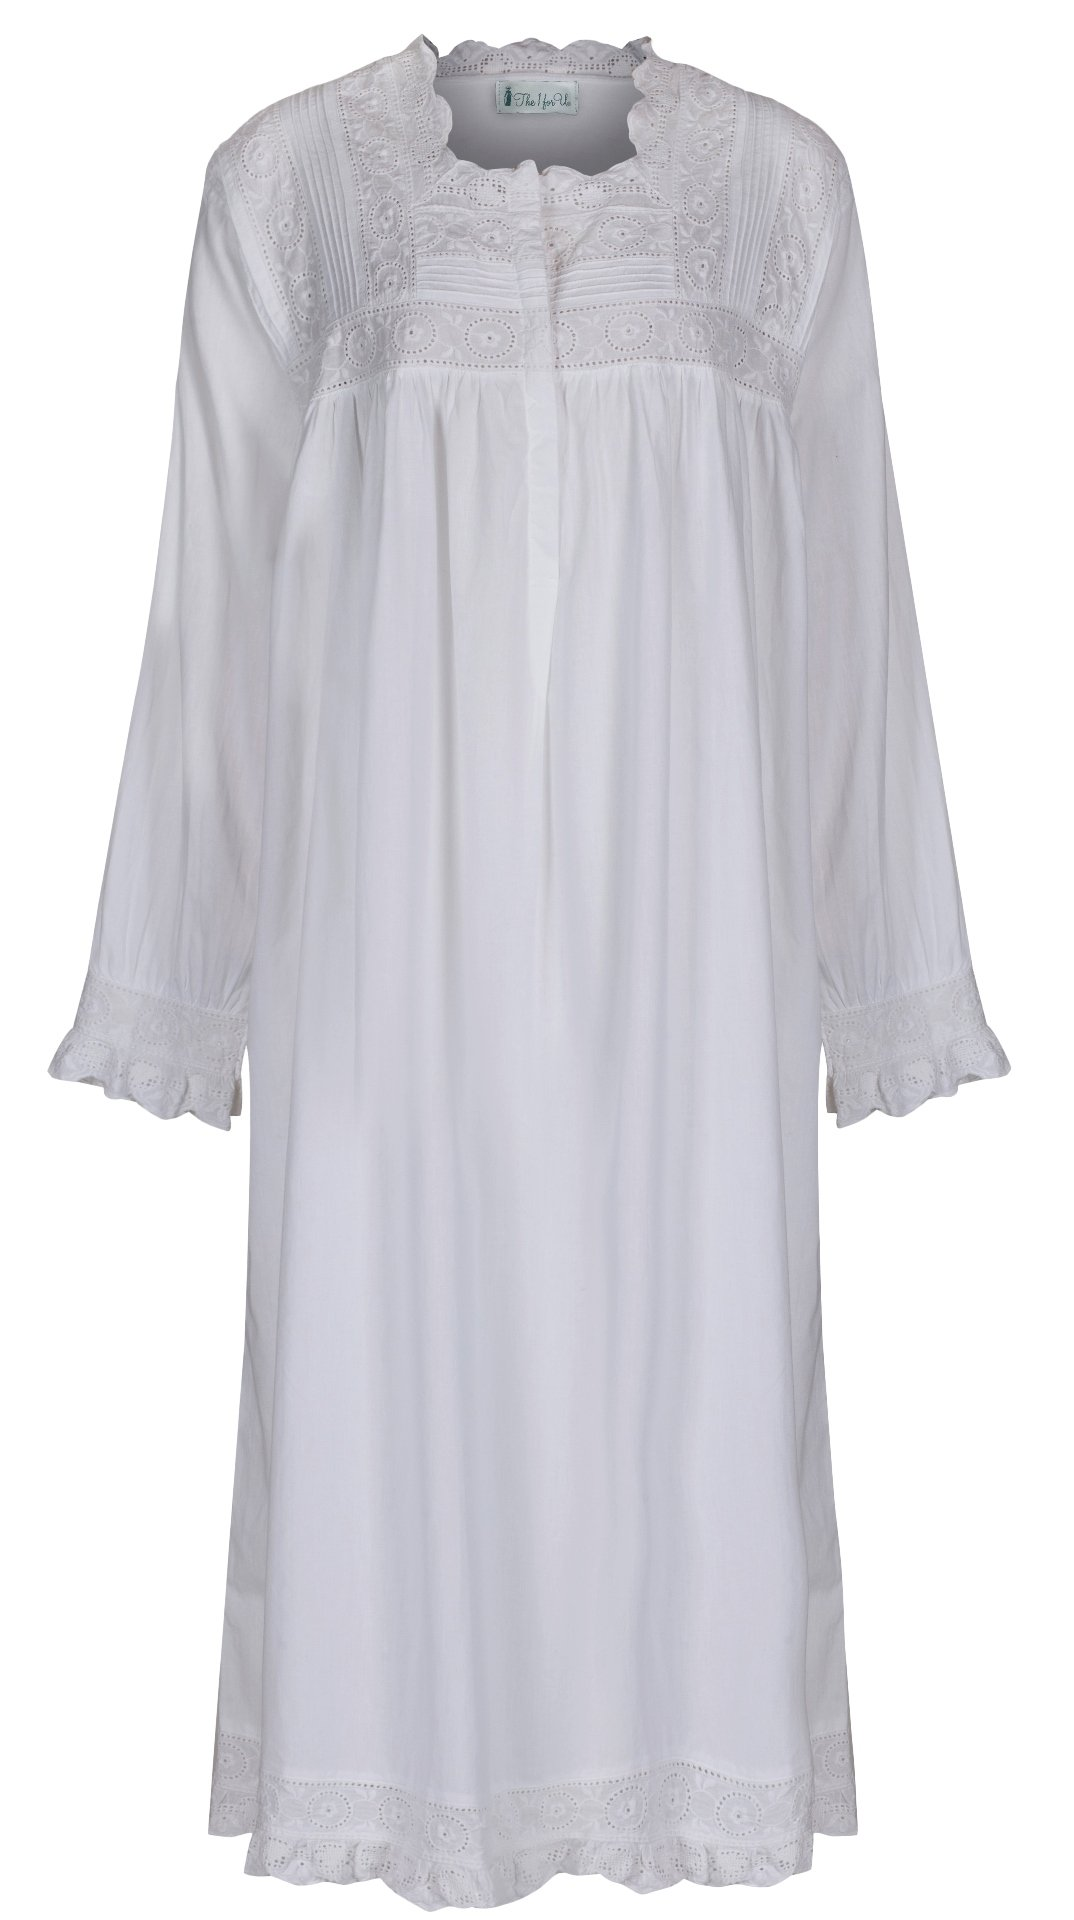 The 1 for U 100% Cotton Praire Style Nightgown Pockets - Henrietta- XXS - XXXL (Medium)